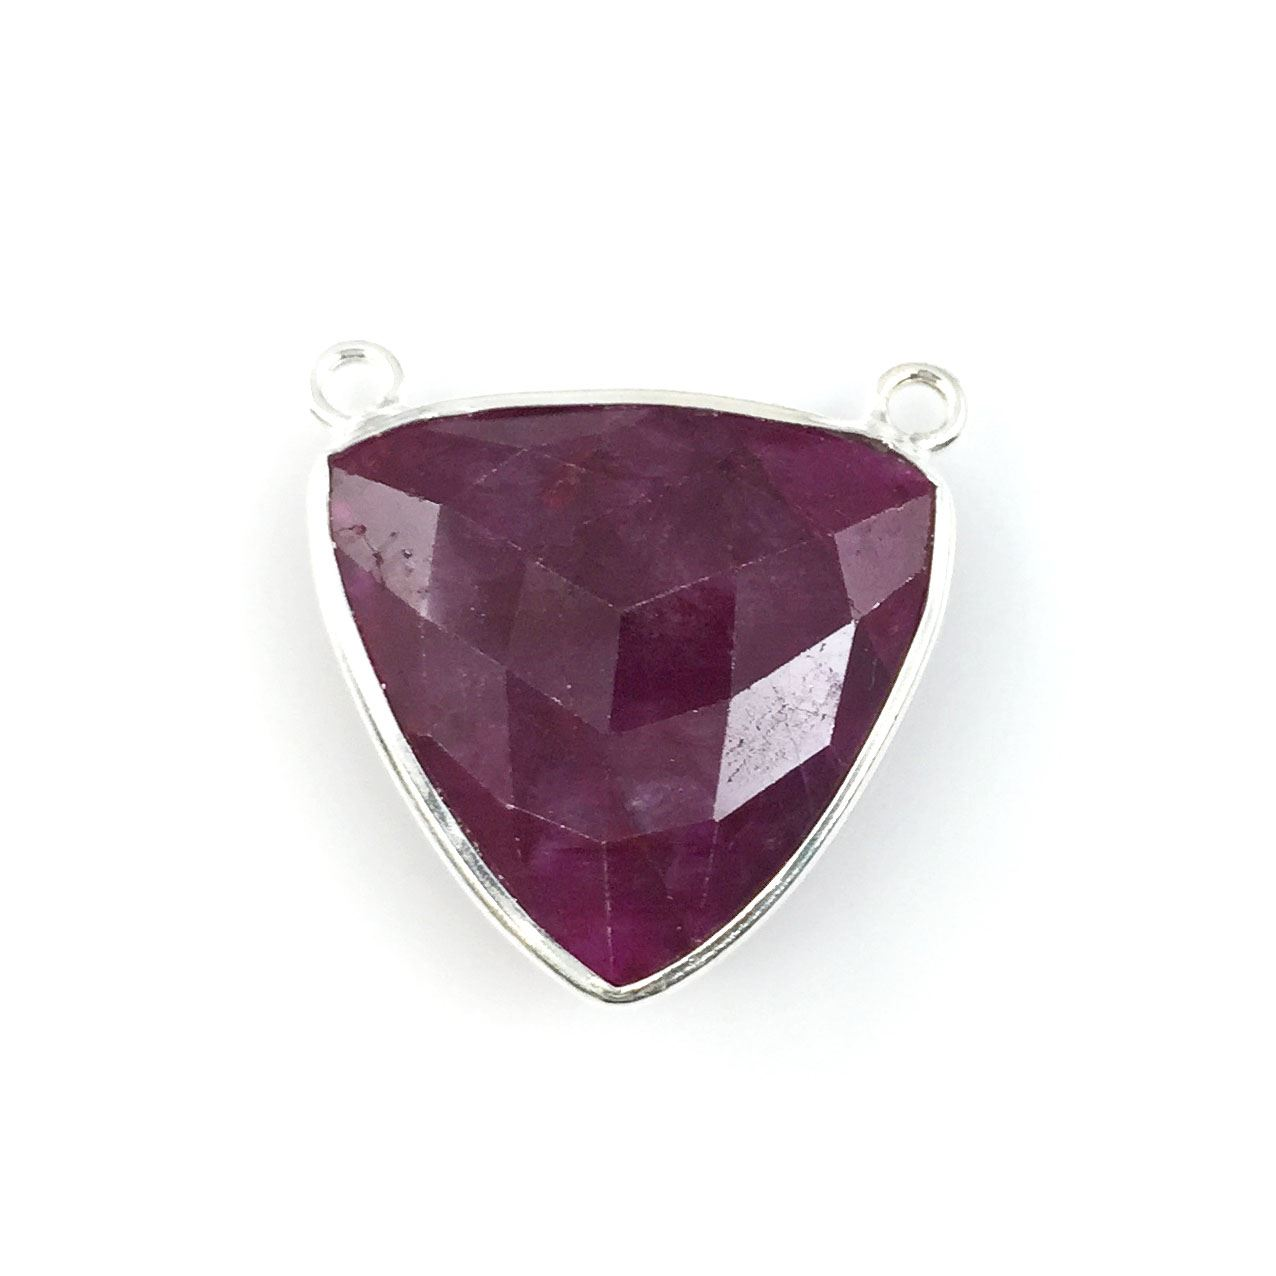 Bezel Gemstone Connector Pendant - Ruby Dyed - Sterling Silver - Large Trillion Shaped Faceted - 18 mm - 1 piece